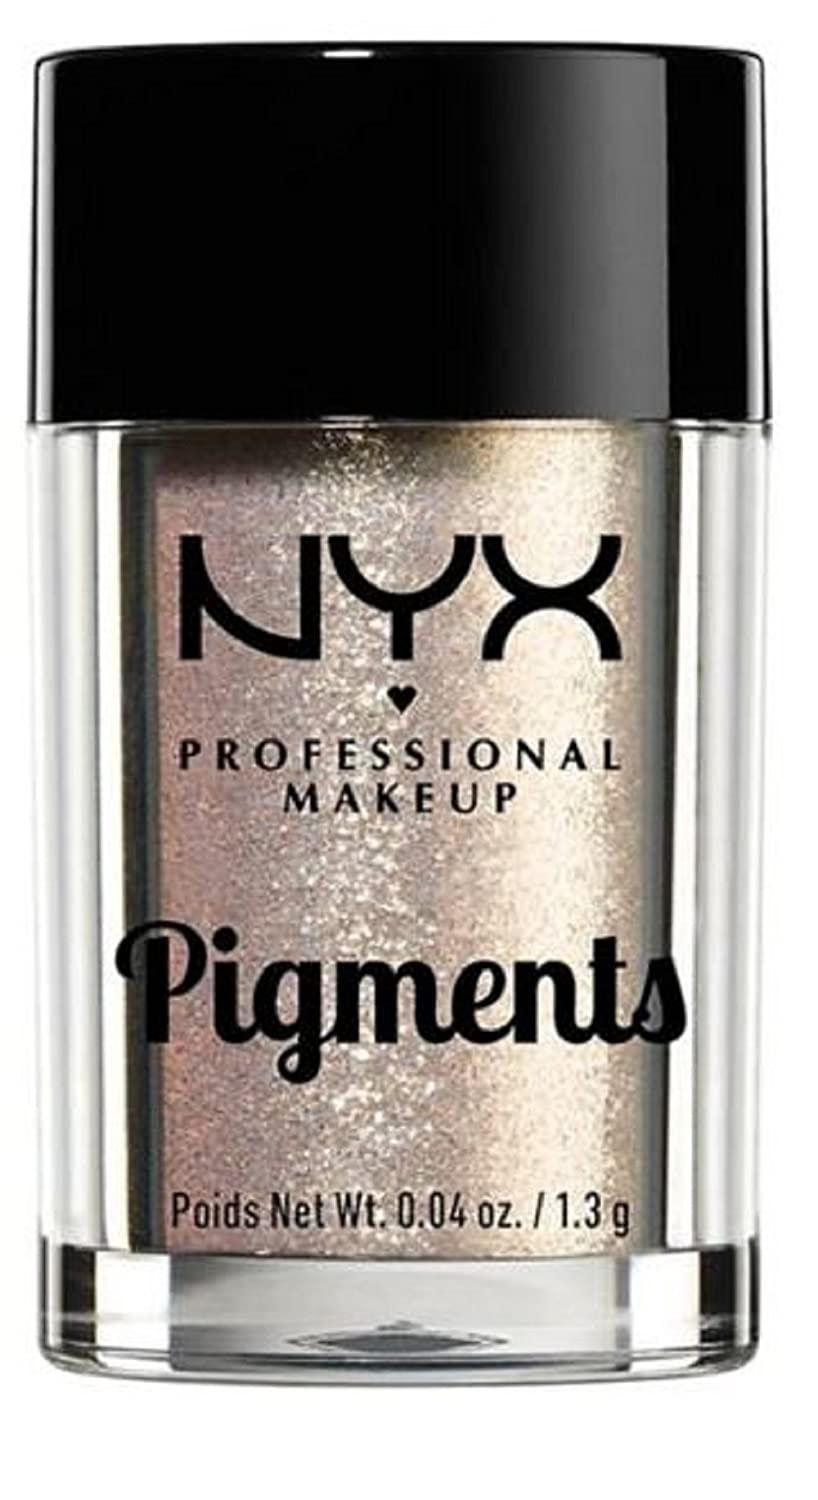 Exclusive Makeup Shimmer Eyeshadow Pigments - NYX Professional, Trending, Best Selling (VEGAS, BABY!)